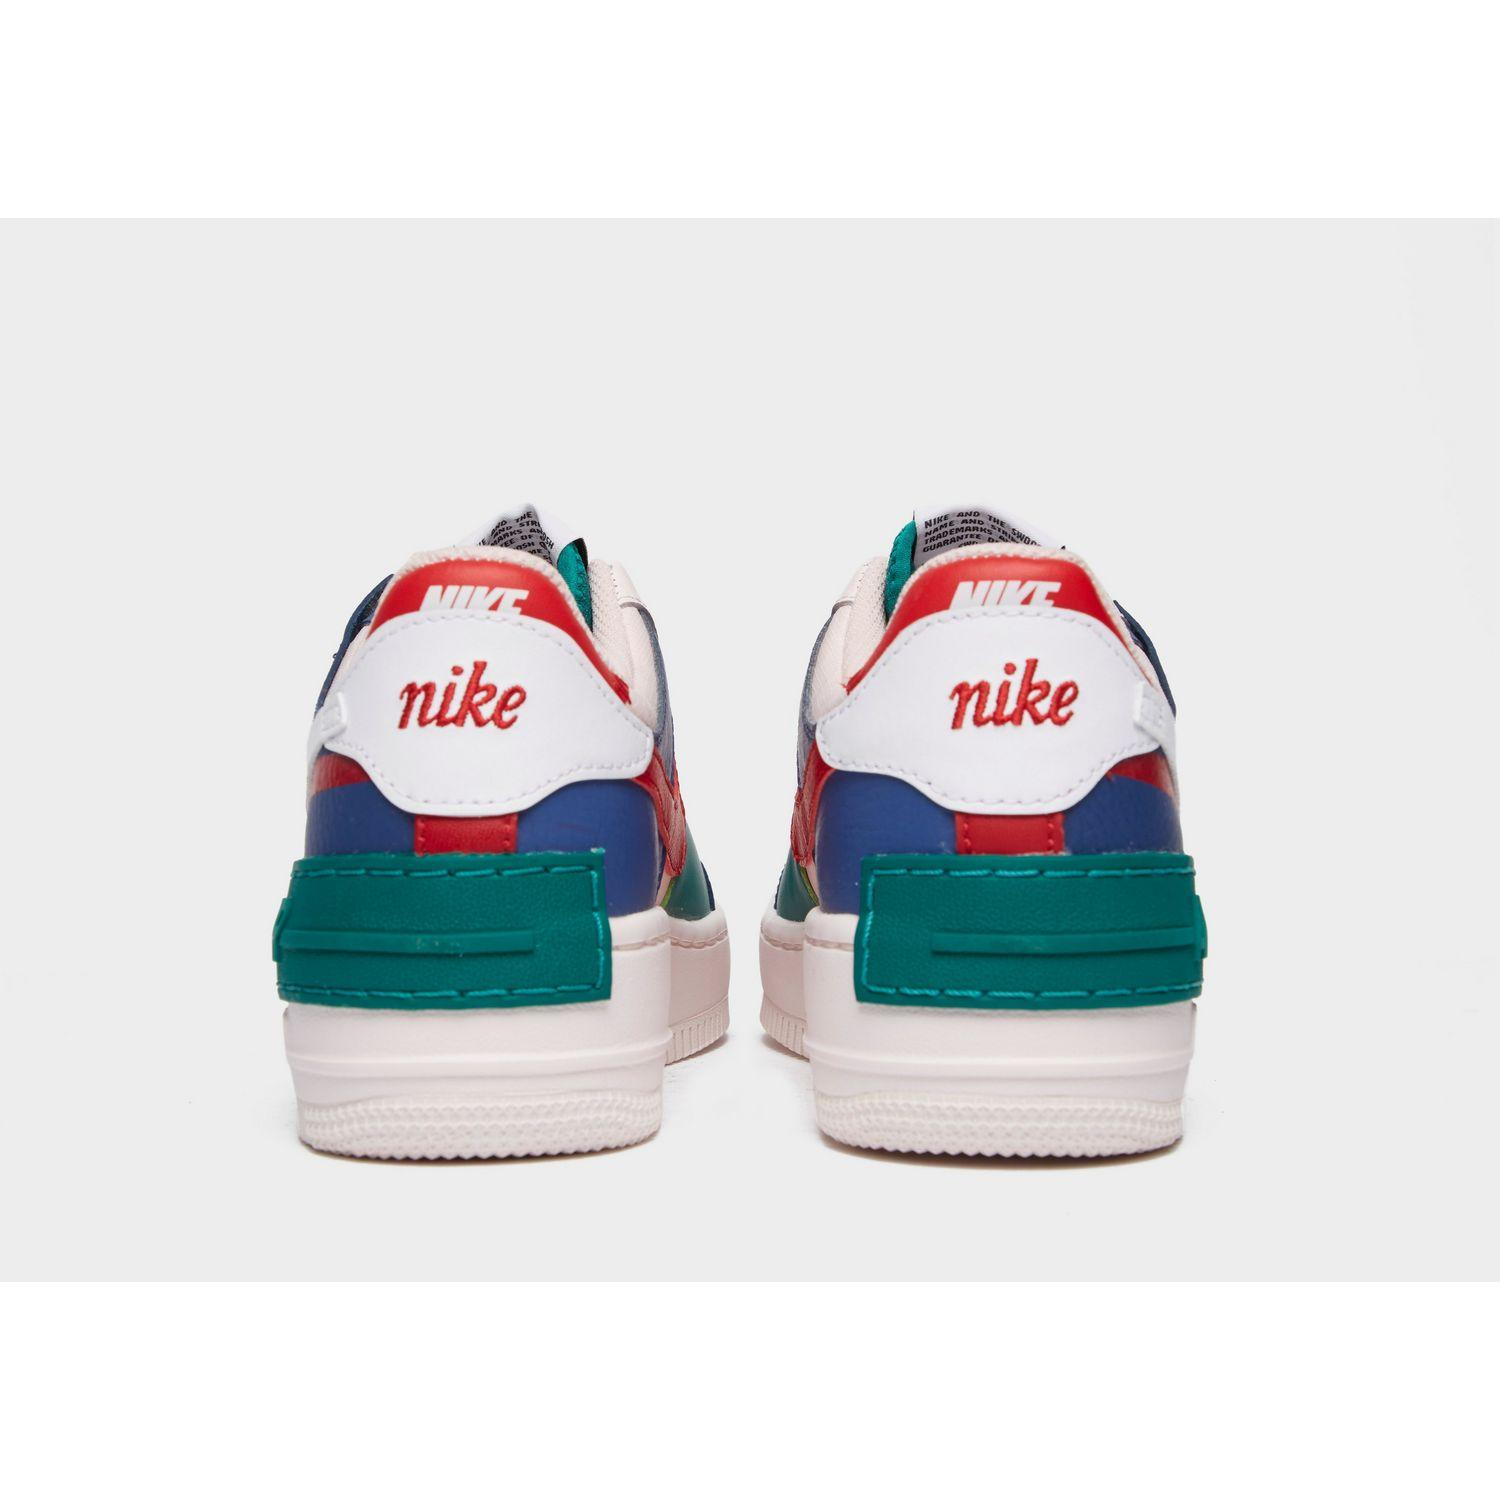 Nike Leather Air Force 1 Shadow In Navy Pink Blue Lyst Nike air force 1 low just do it white. air force 1 shadow